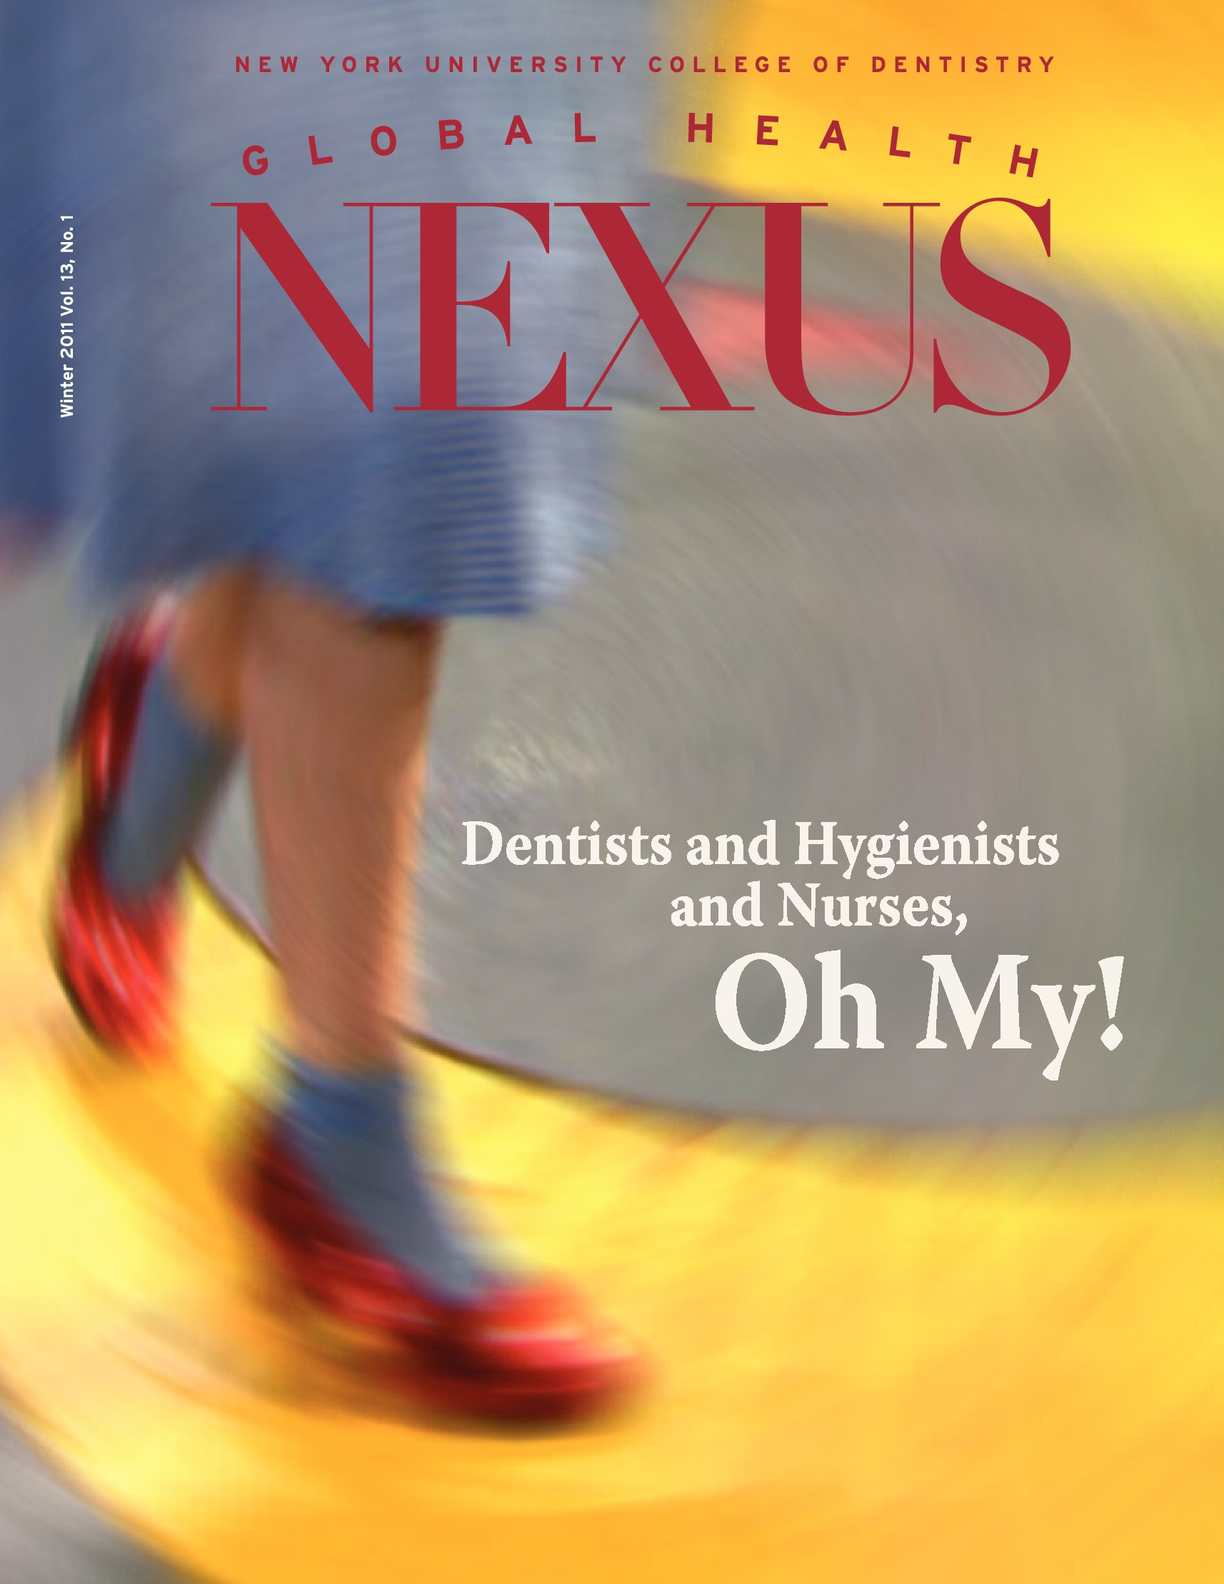 Calaméo - Global Health Nexus, Winter 2011: Dentists and Hygienists and  Nurses, Oh My!